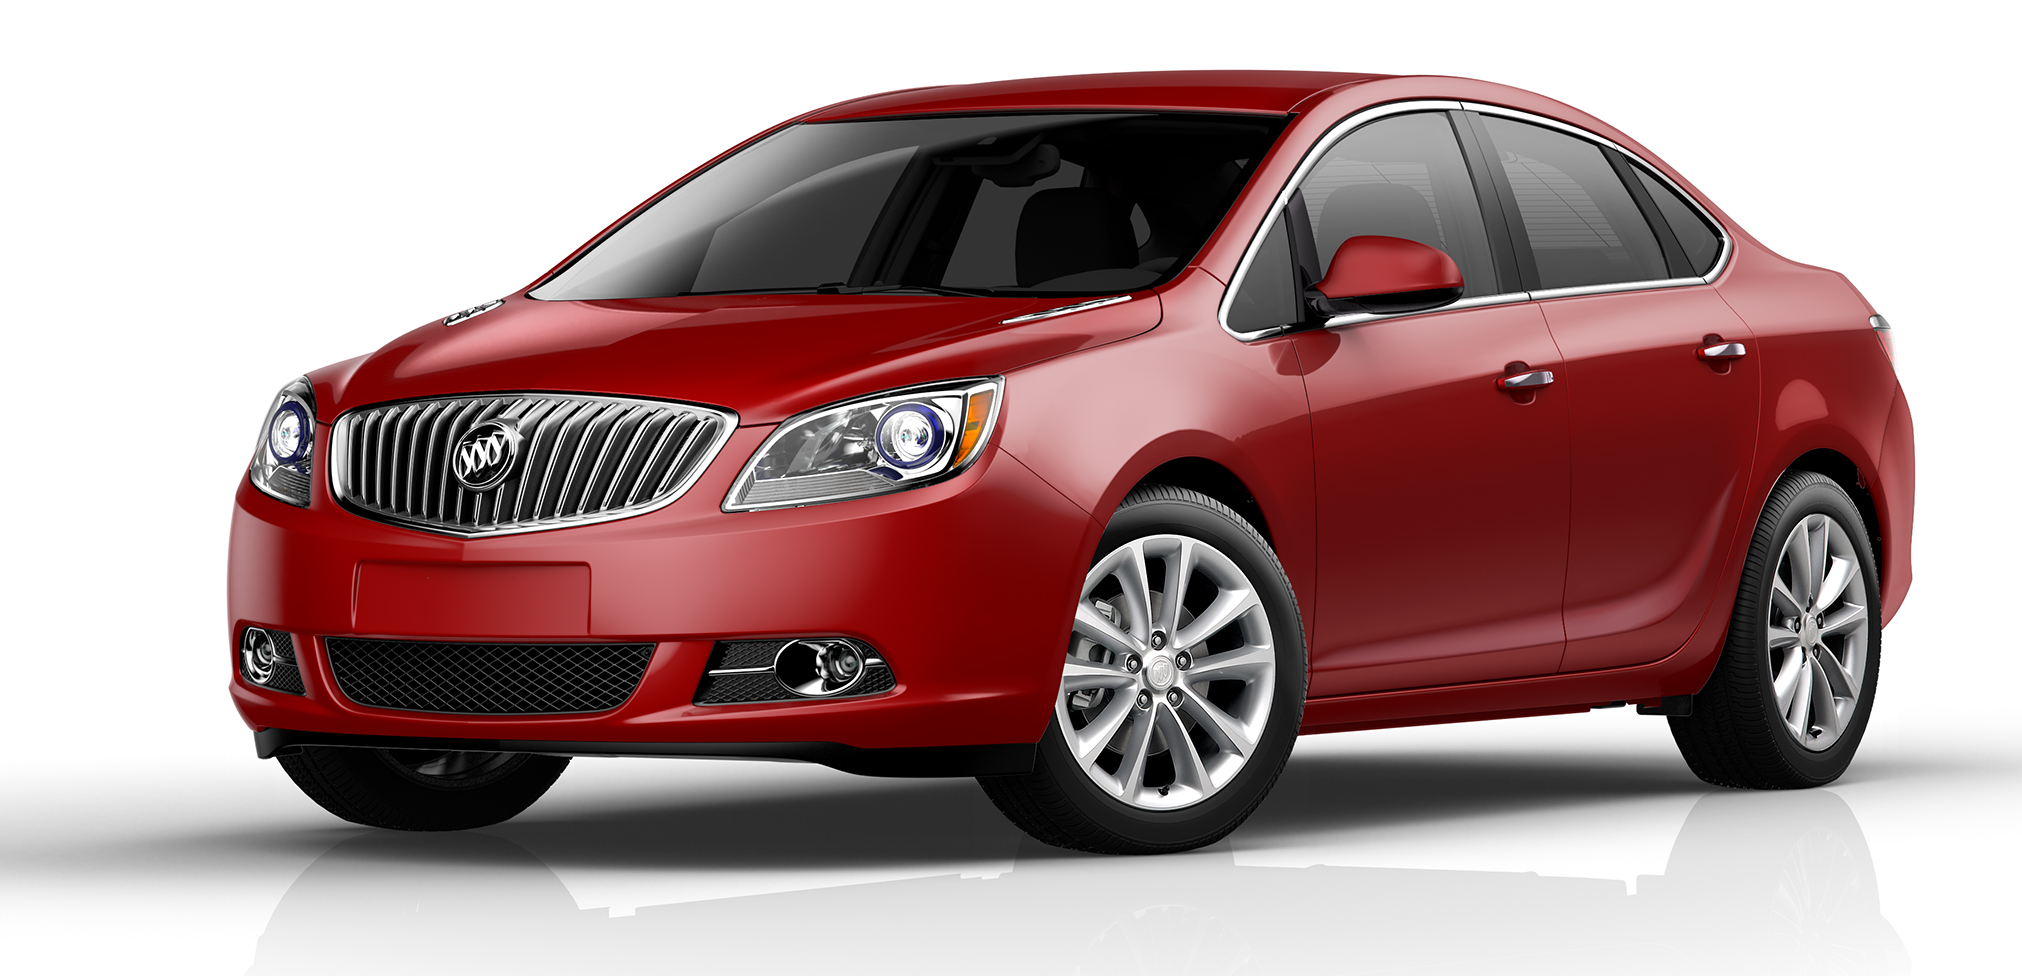 2017 buick verano winnipeg verano details specs gauthier. Black Bedroom Furniture Sets. Home Design Ideas